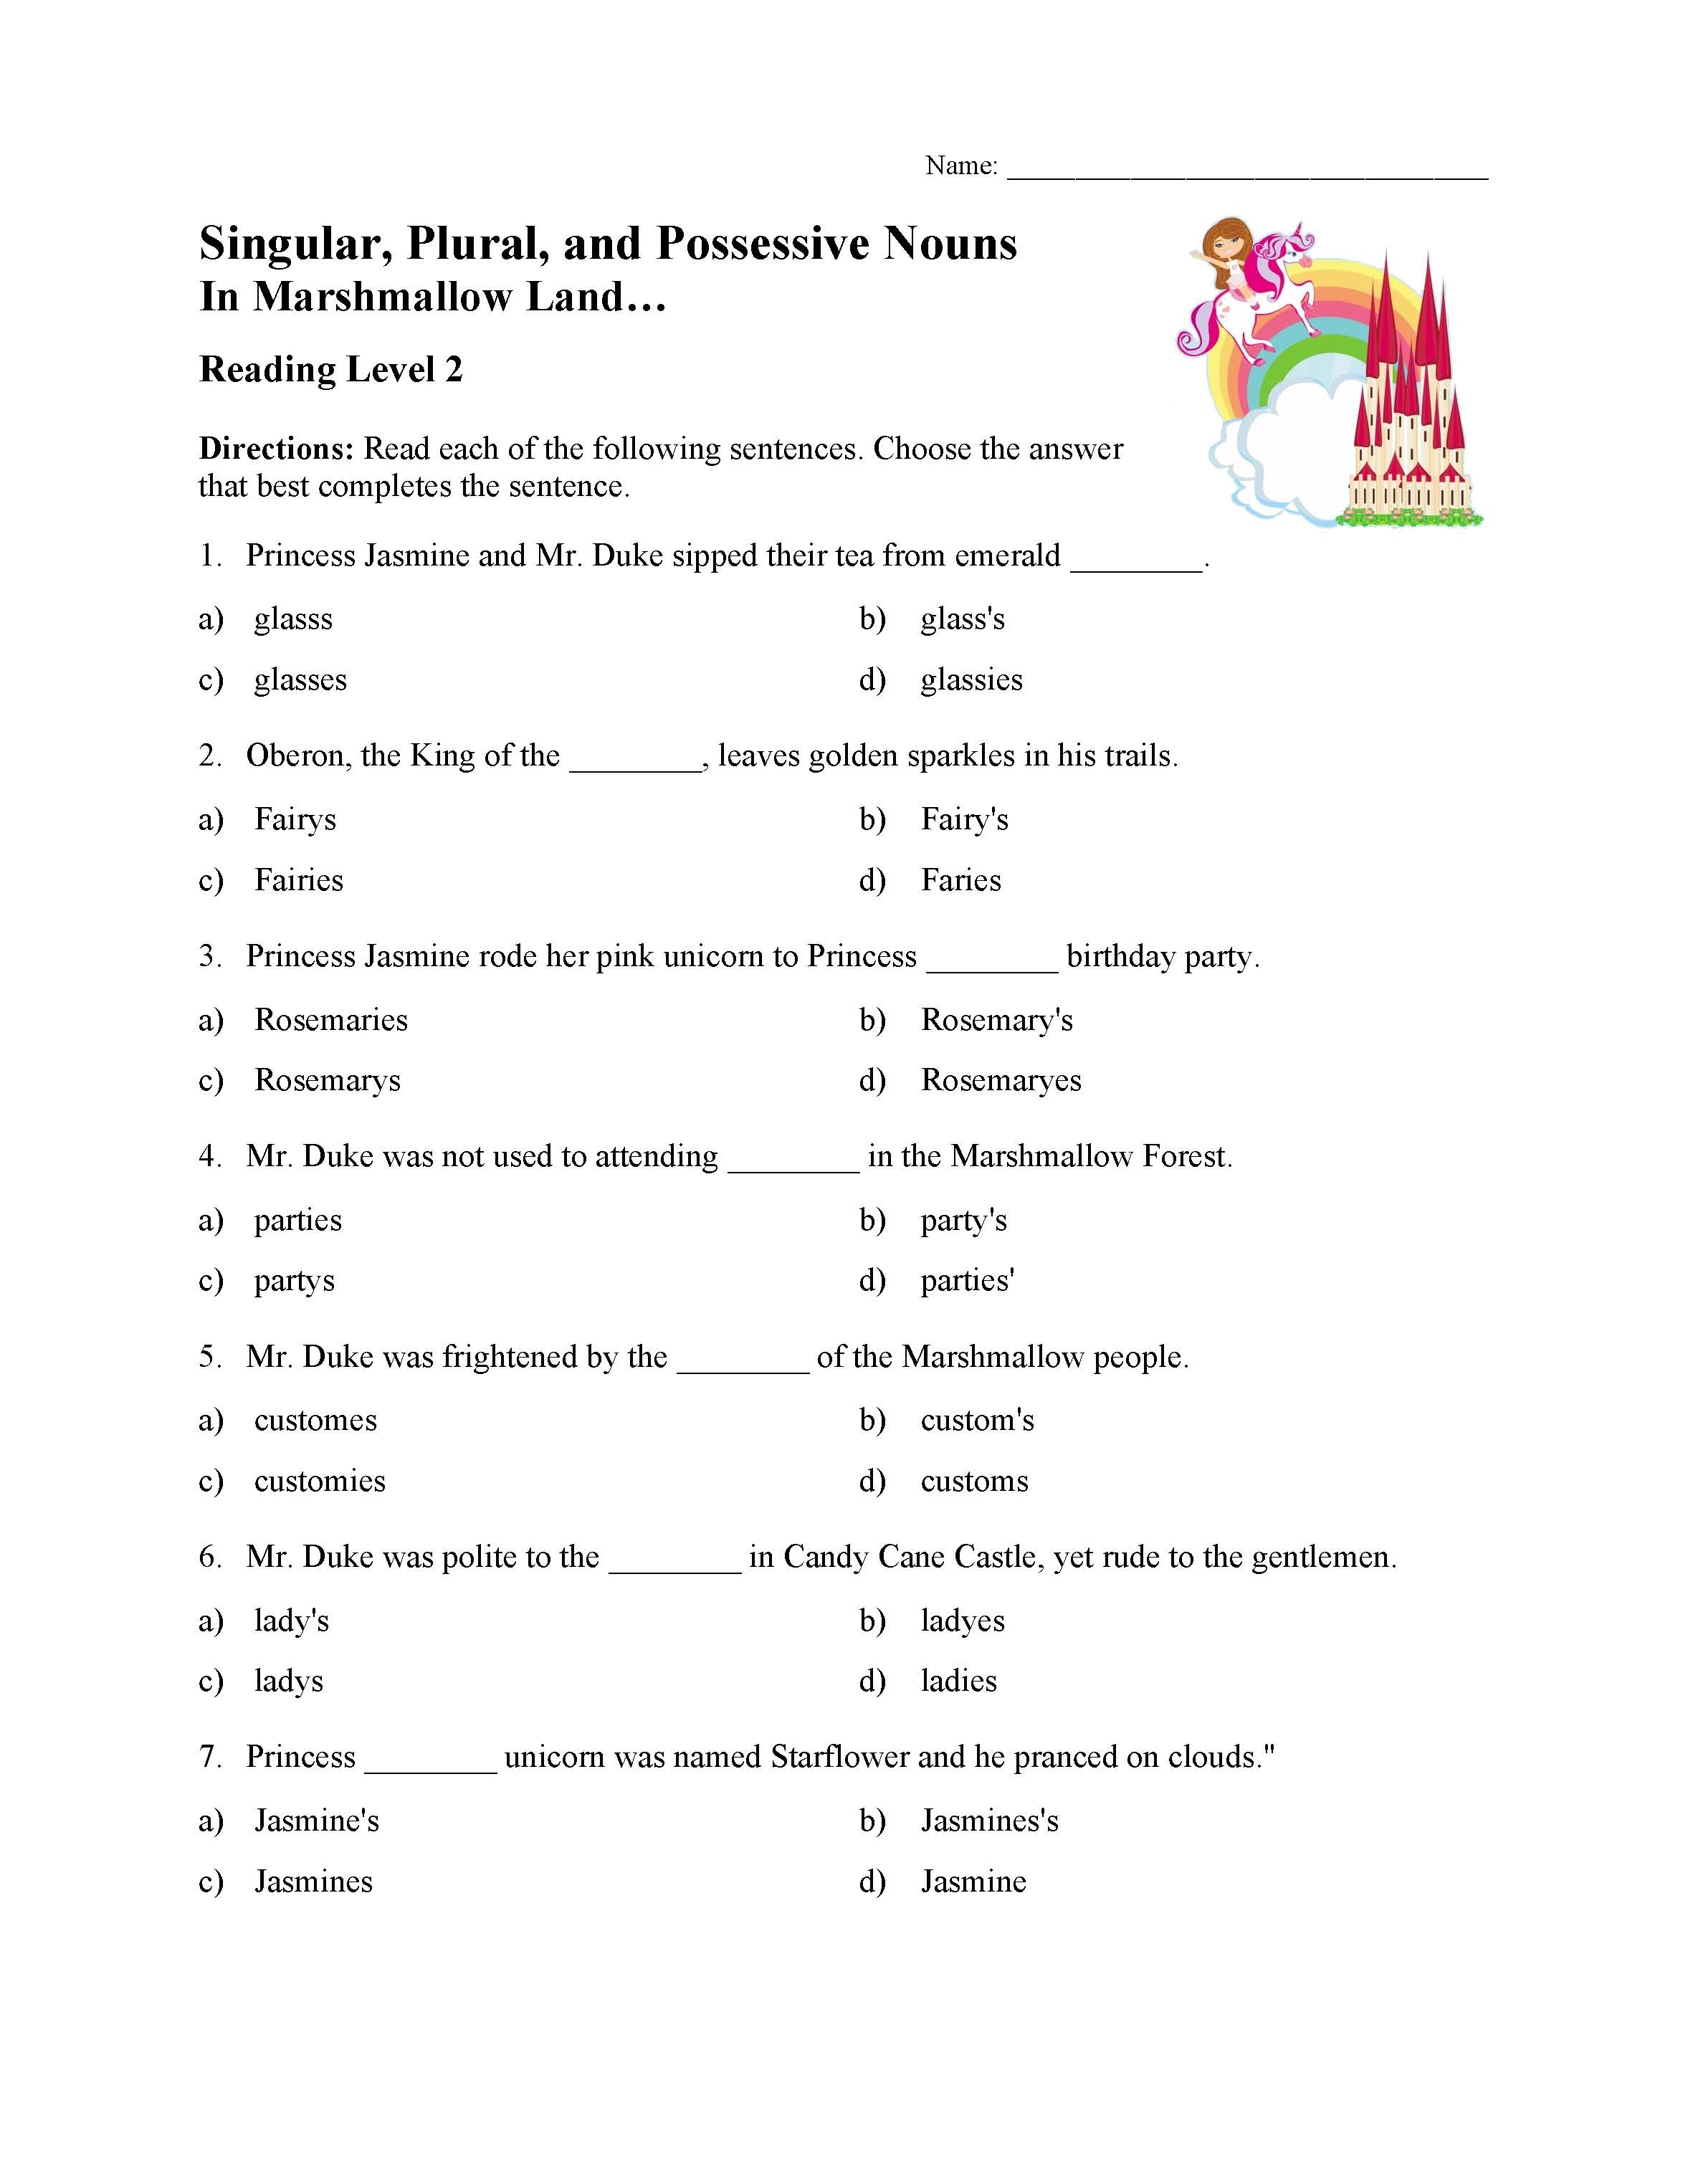 Singular Plural And Possessive Nouns Test 1